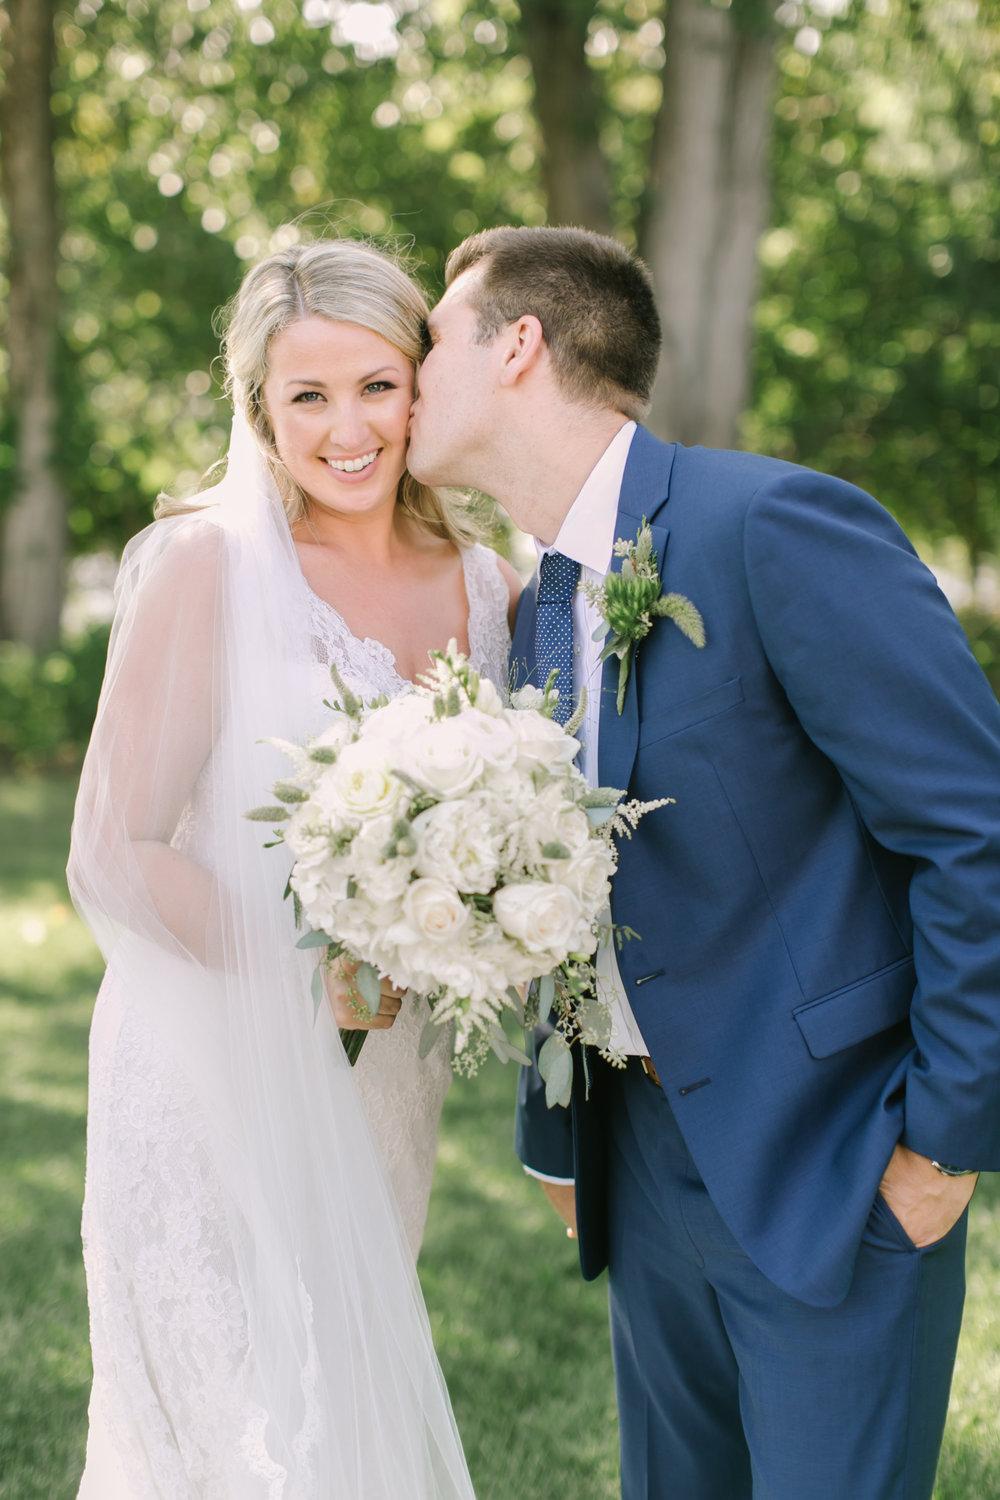 Love&LightPhotographs_Kate&Eli_Wedding_Preview-22.jpg